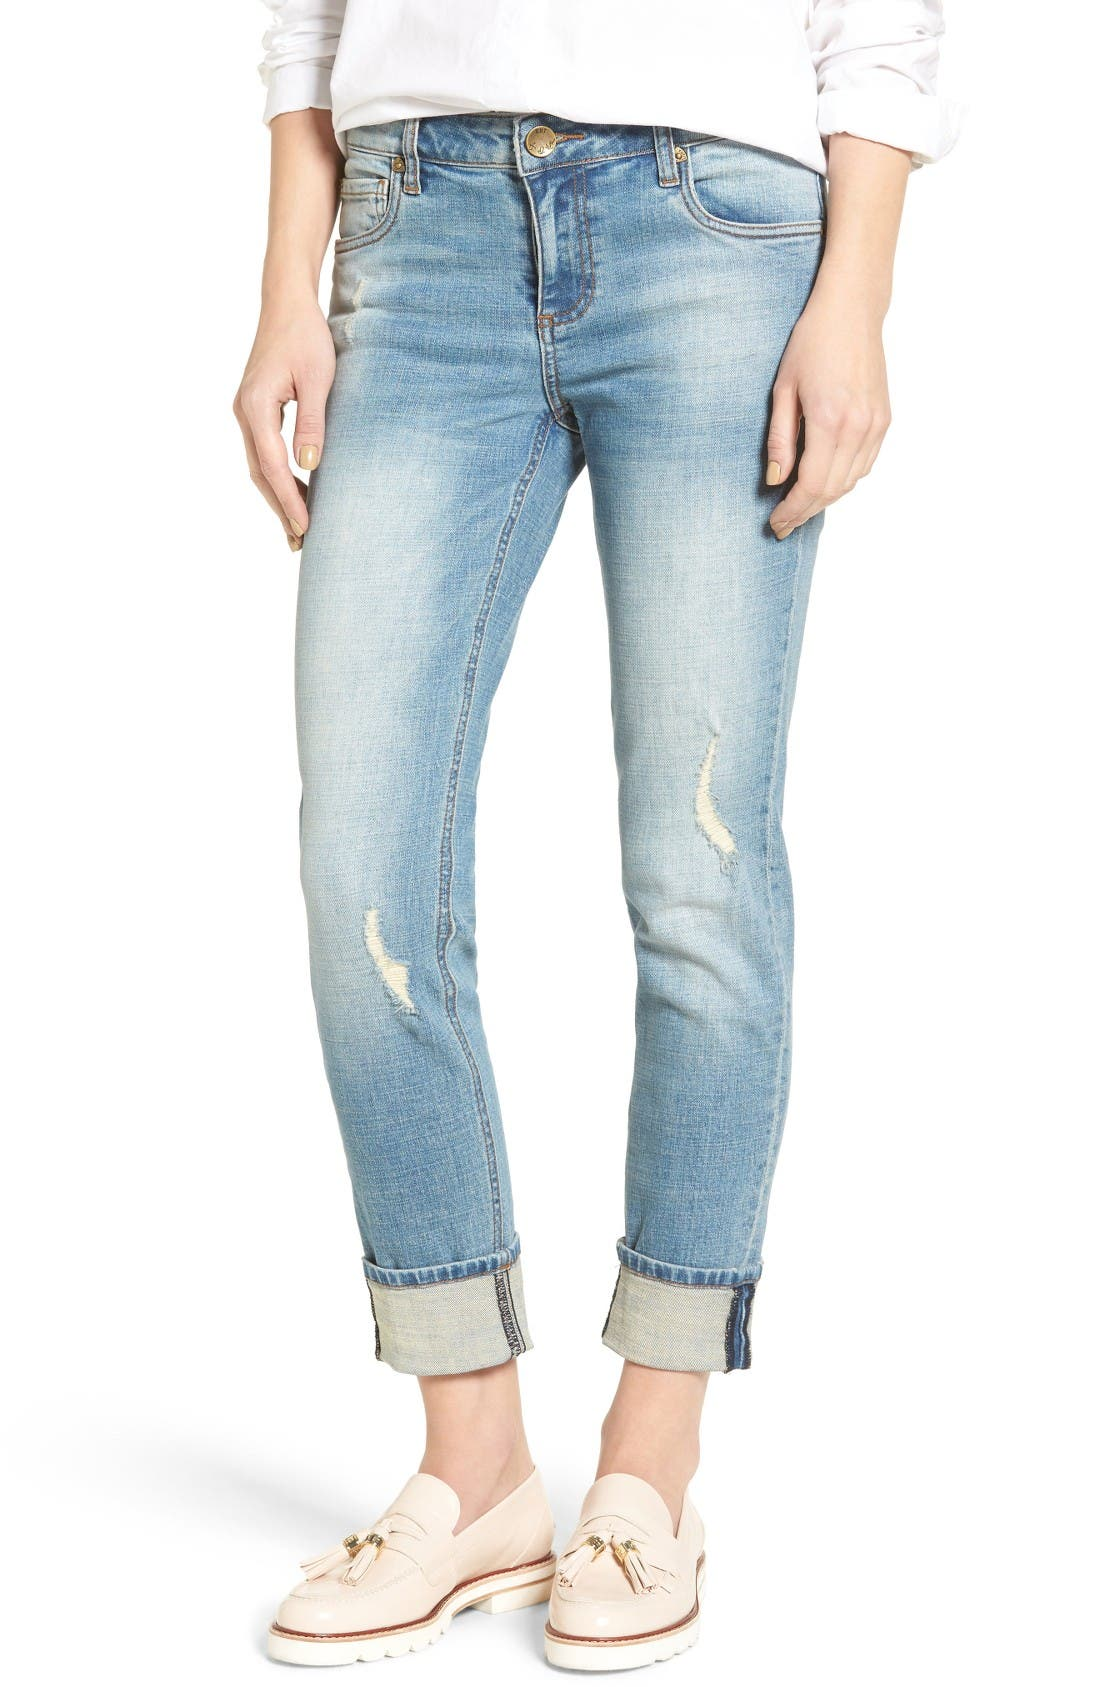 Alternate Image 1 Selected - KUT from the Kloth Catherine Boyfriend Jeans (fromal)